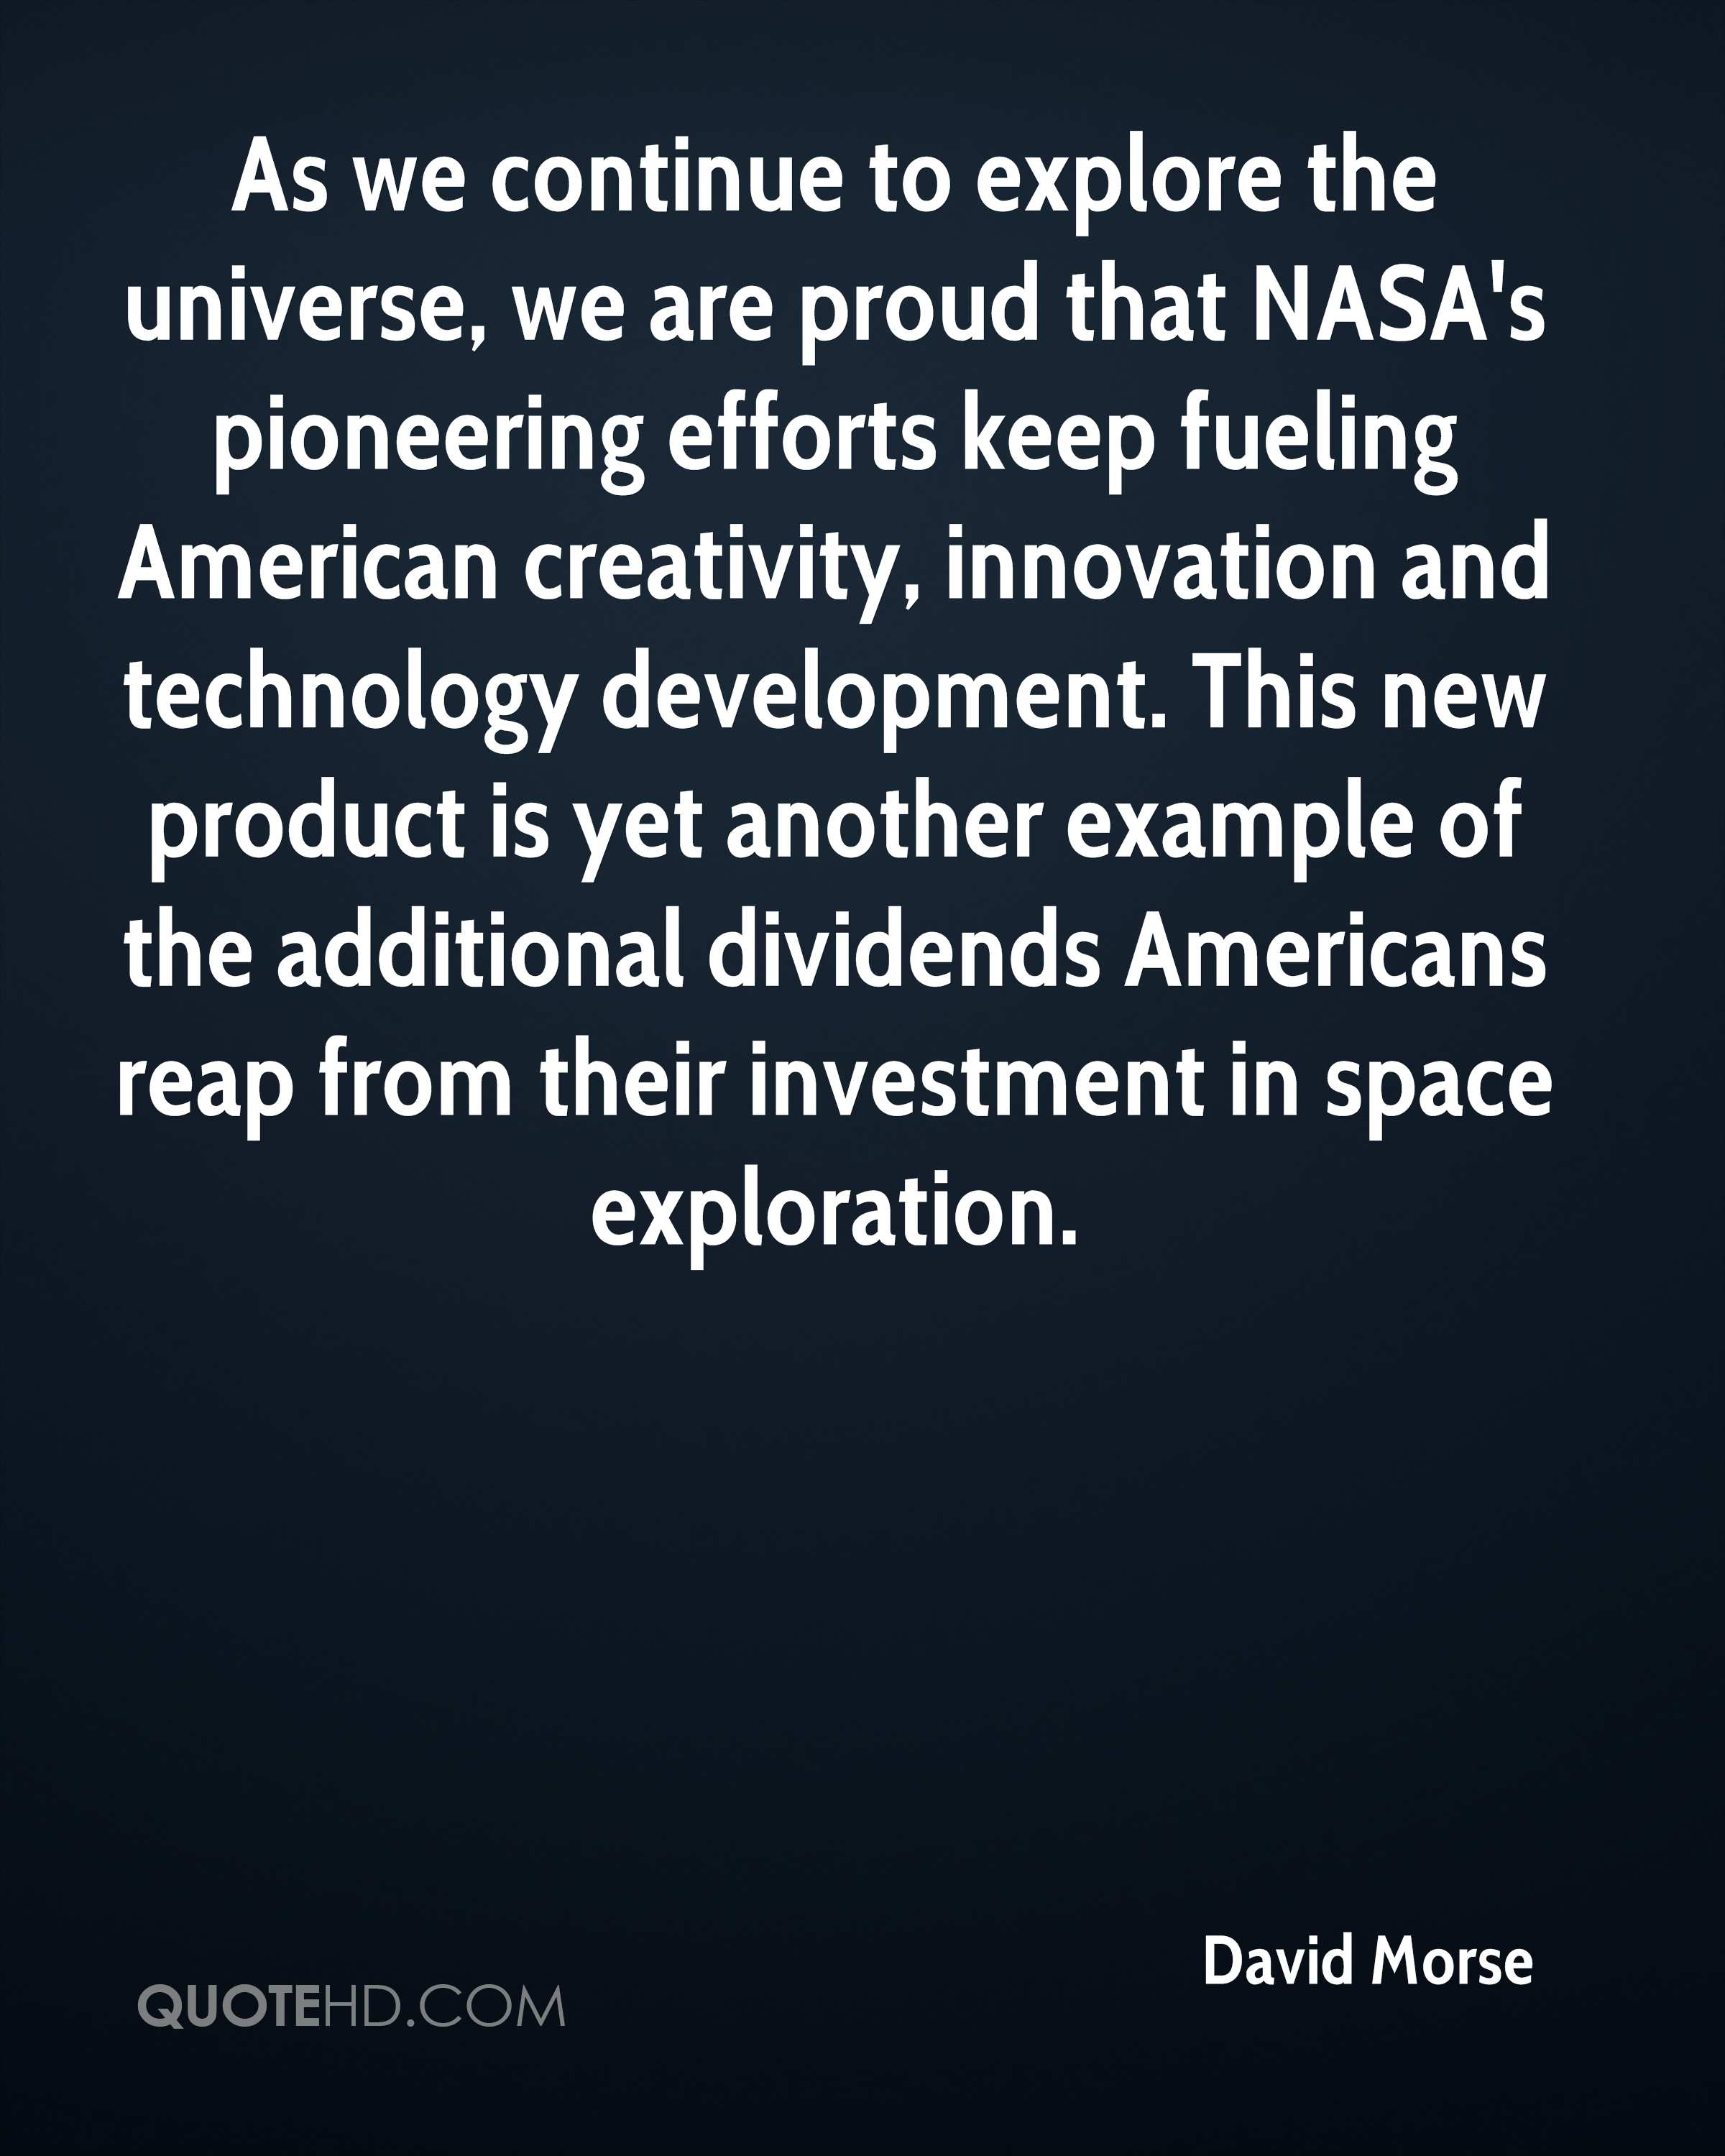 As we continue to explore the universe, we are proud that NASA's pioneering efforts keep fueling American creativity, innovation and technology development. This new product is yet another example of the additional dividends Americans reap from their investment in space exploration.